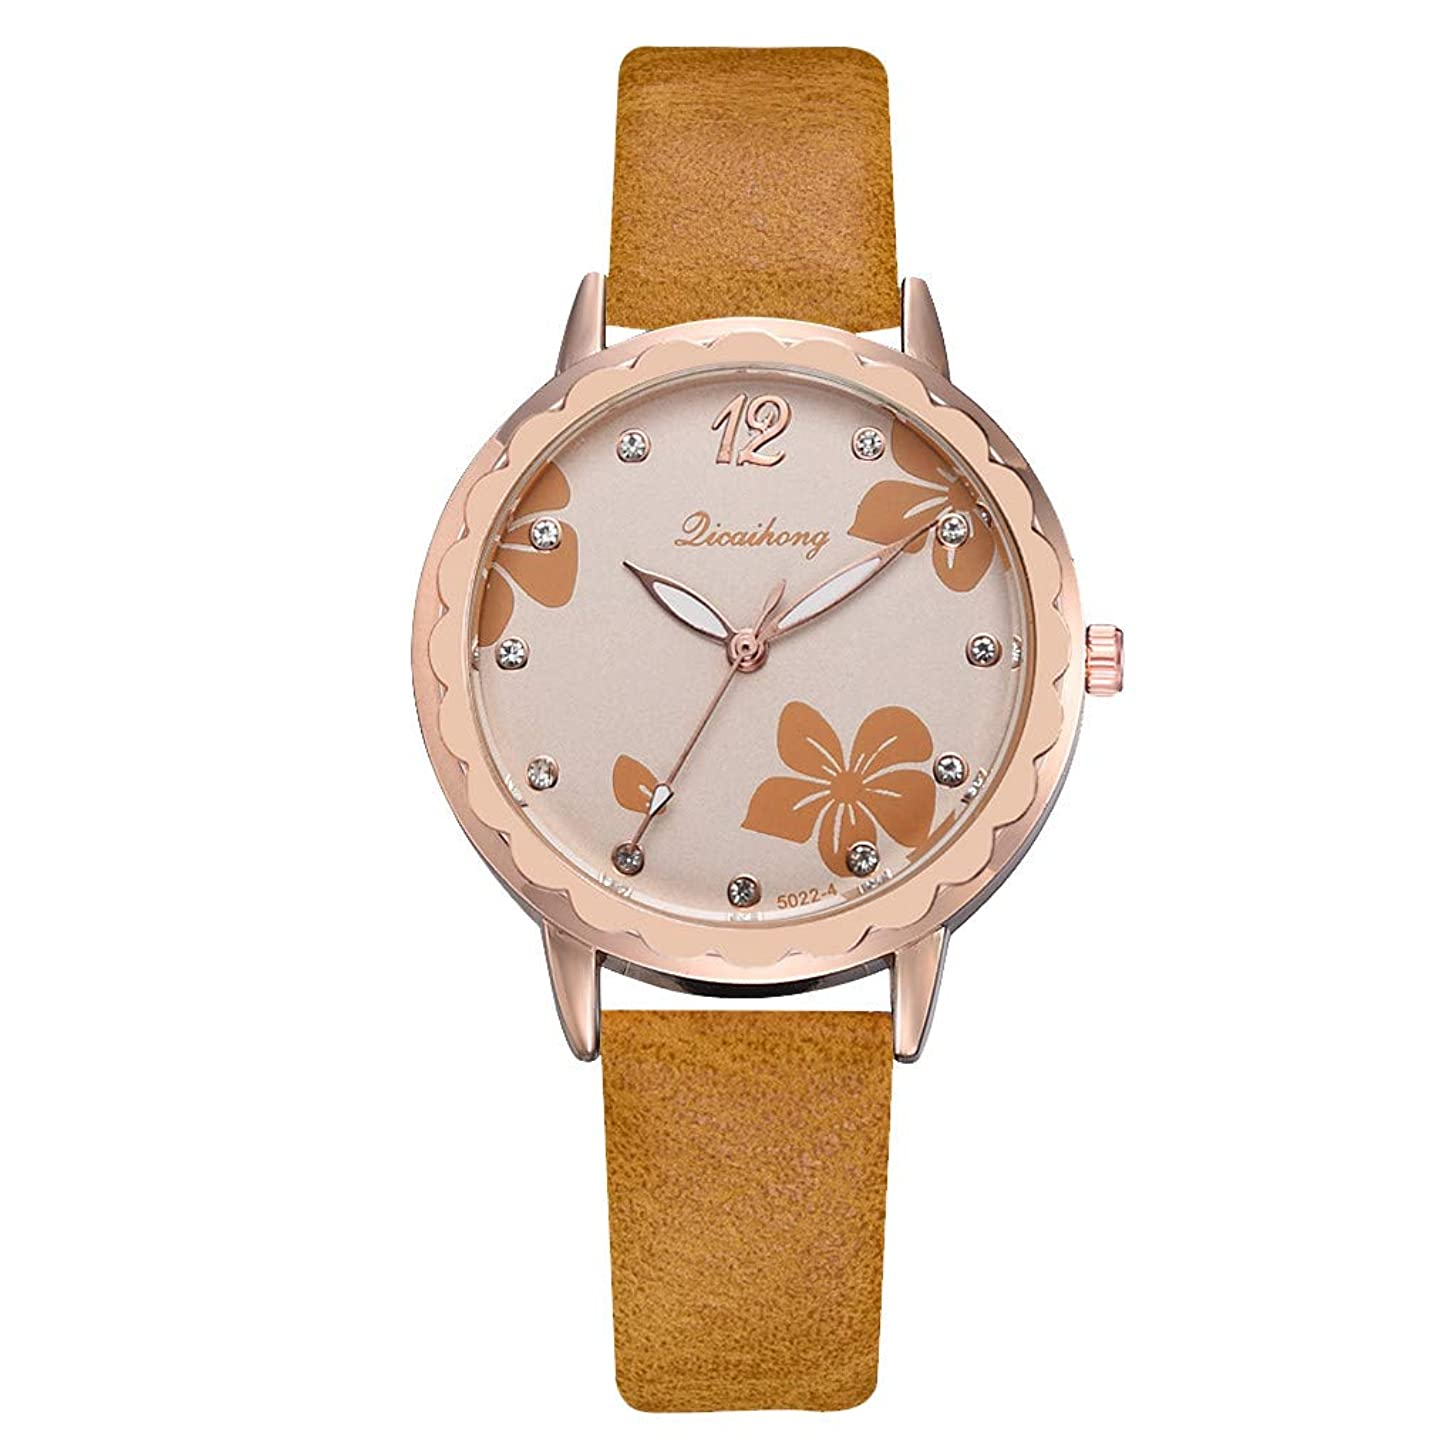 Womens Watch,LUCAMORE Unique Wristwatch Clearance Lady Watches on Sale Flower Diamond Dial Comfortable Leather Band